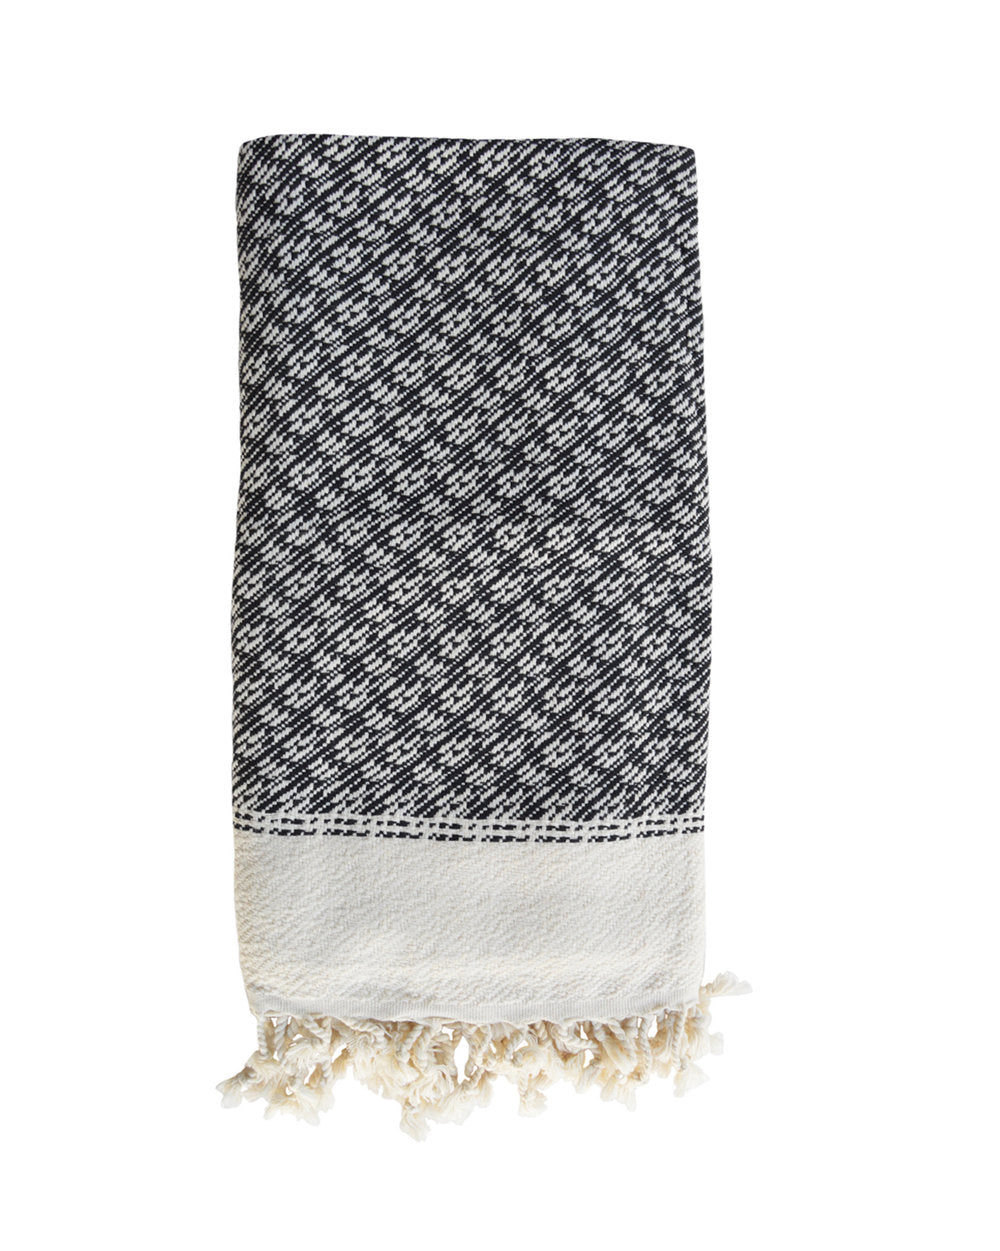 PARIKIA HANDWOVEN THROW - BLACK